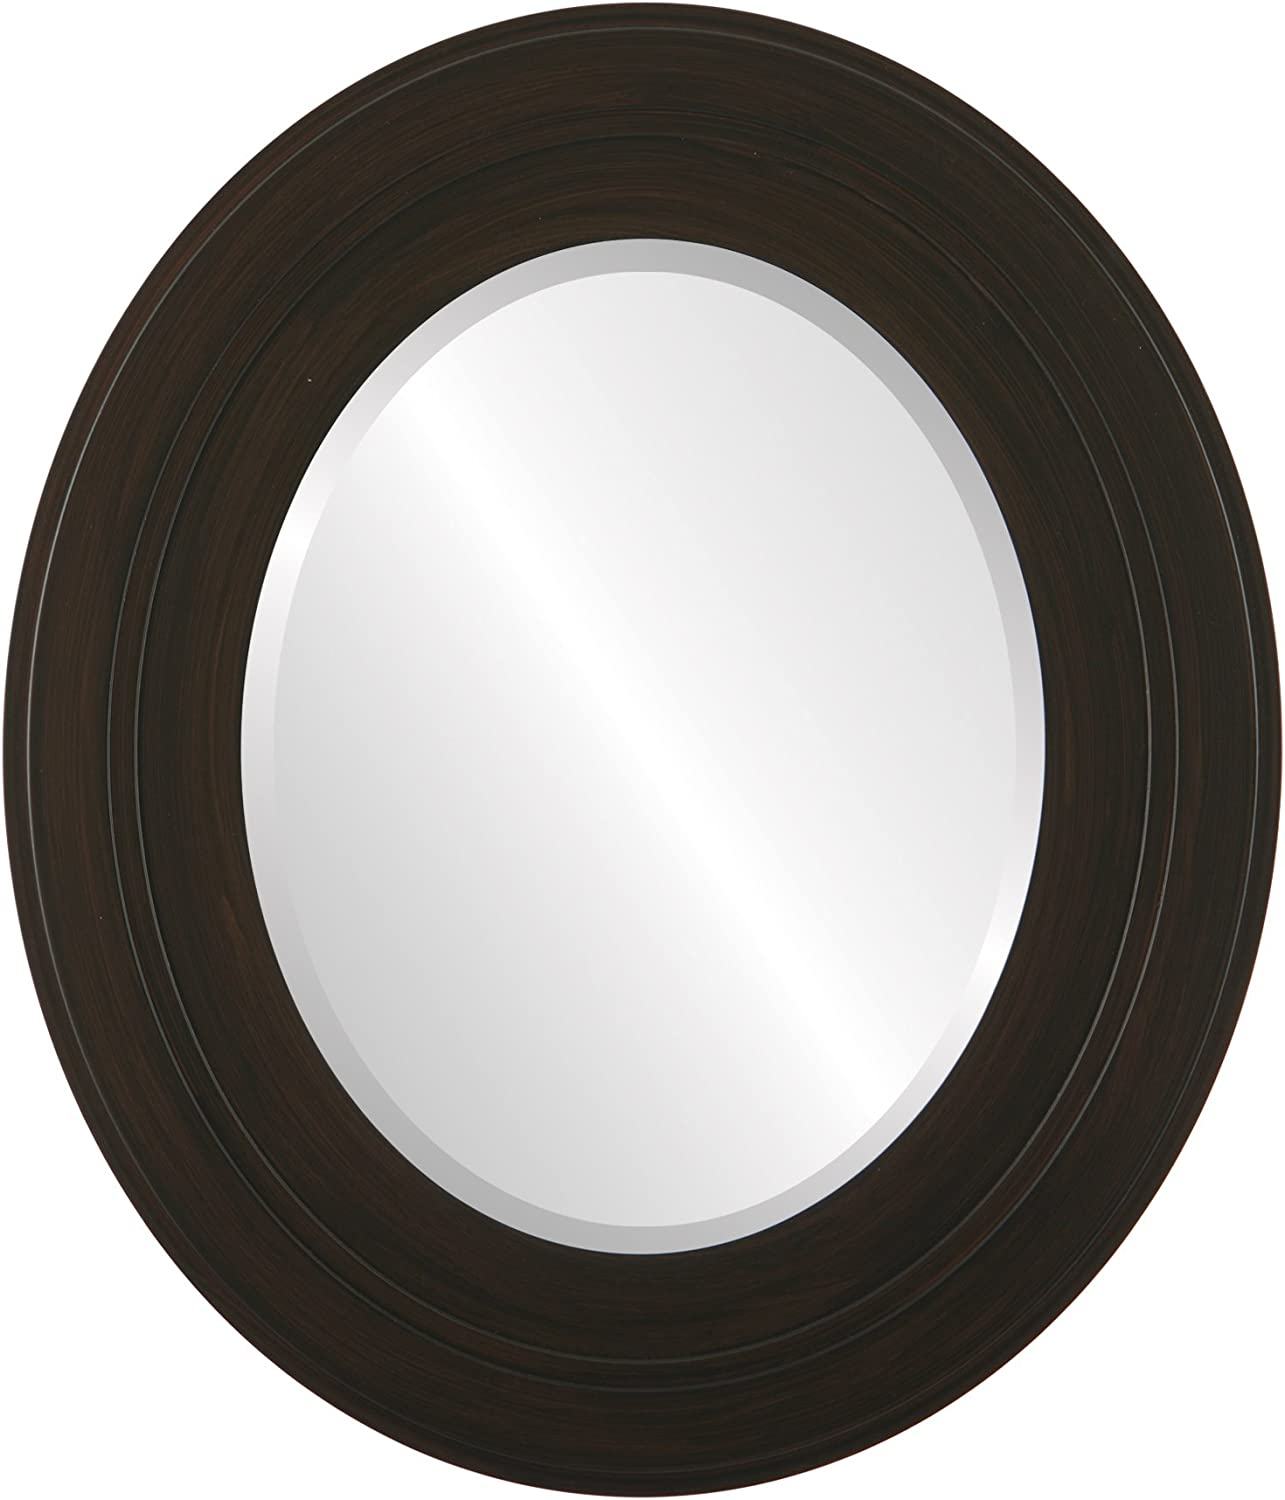 Oval Beveled Wall Mirror for Home Decor - Palomar Style - Black Walnut - 21x25 Outside Dimensions